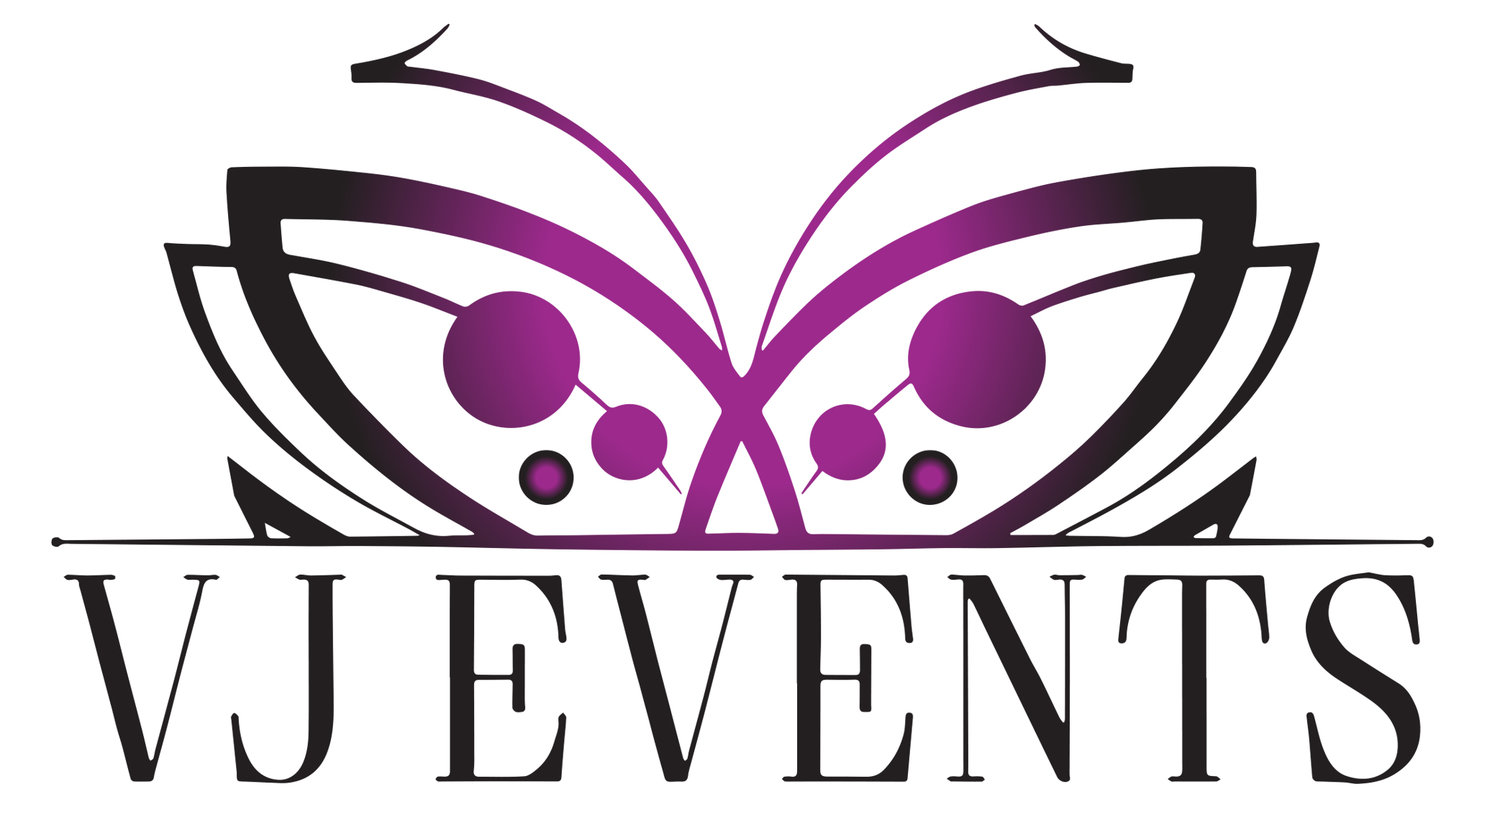 VJ Events LLC